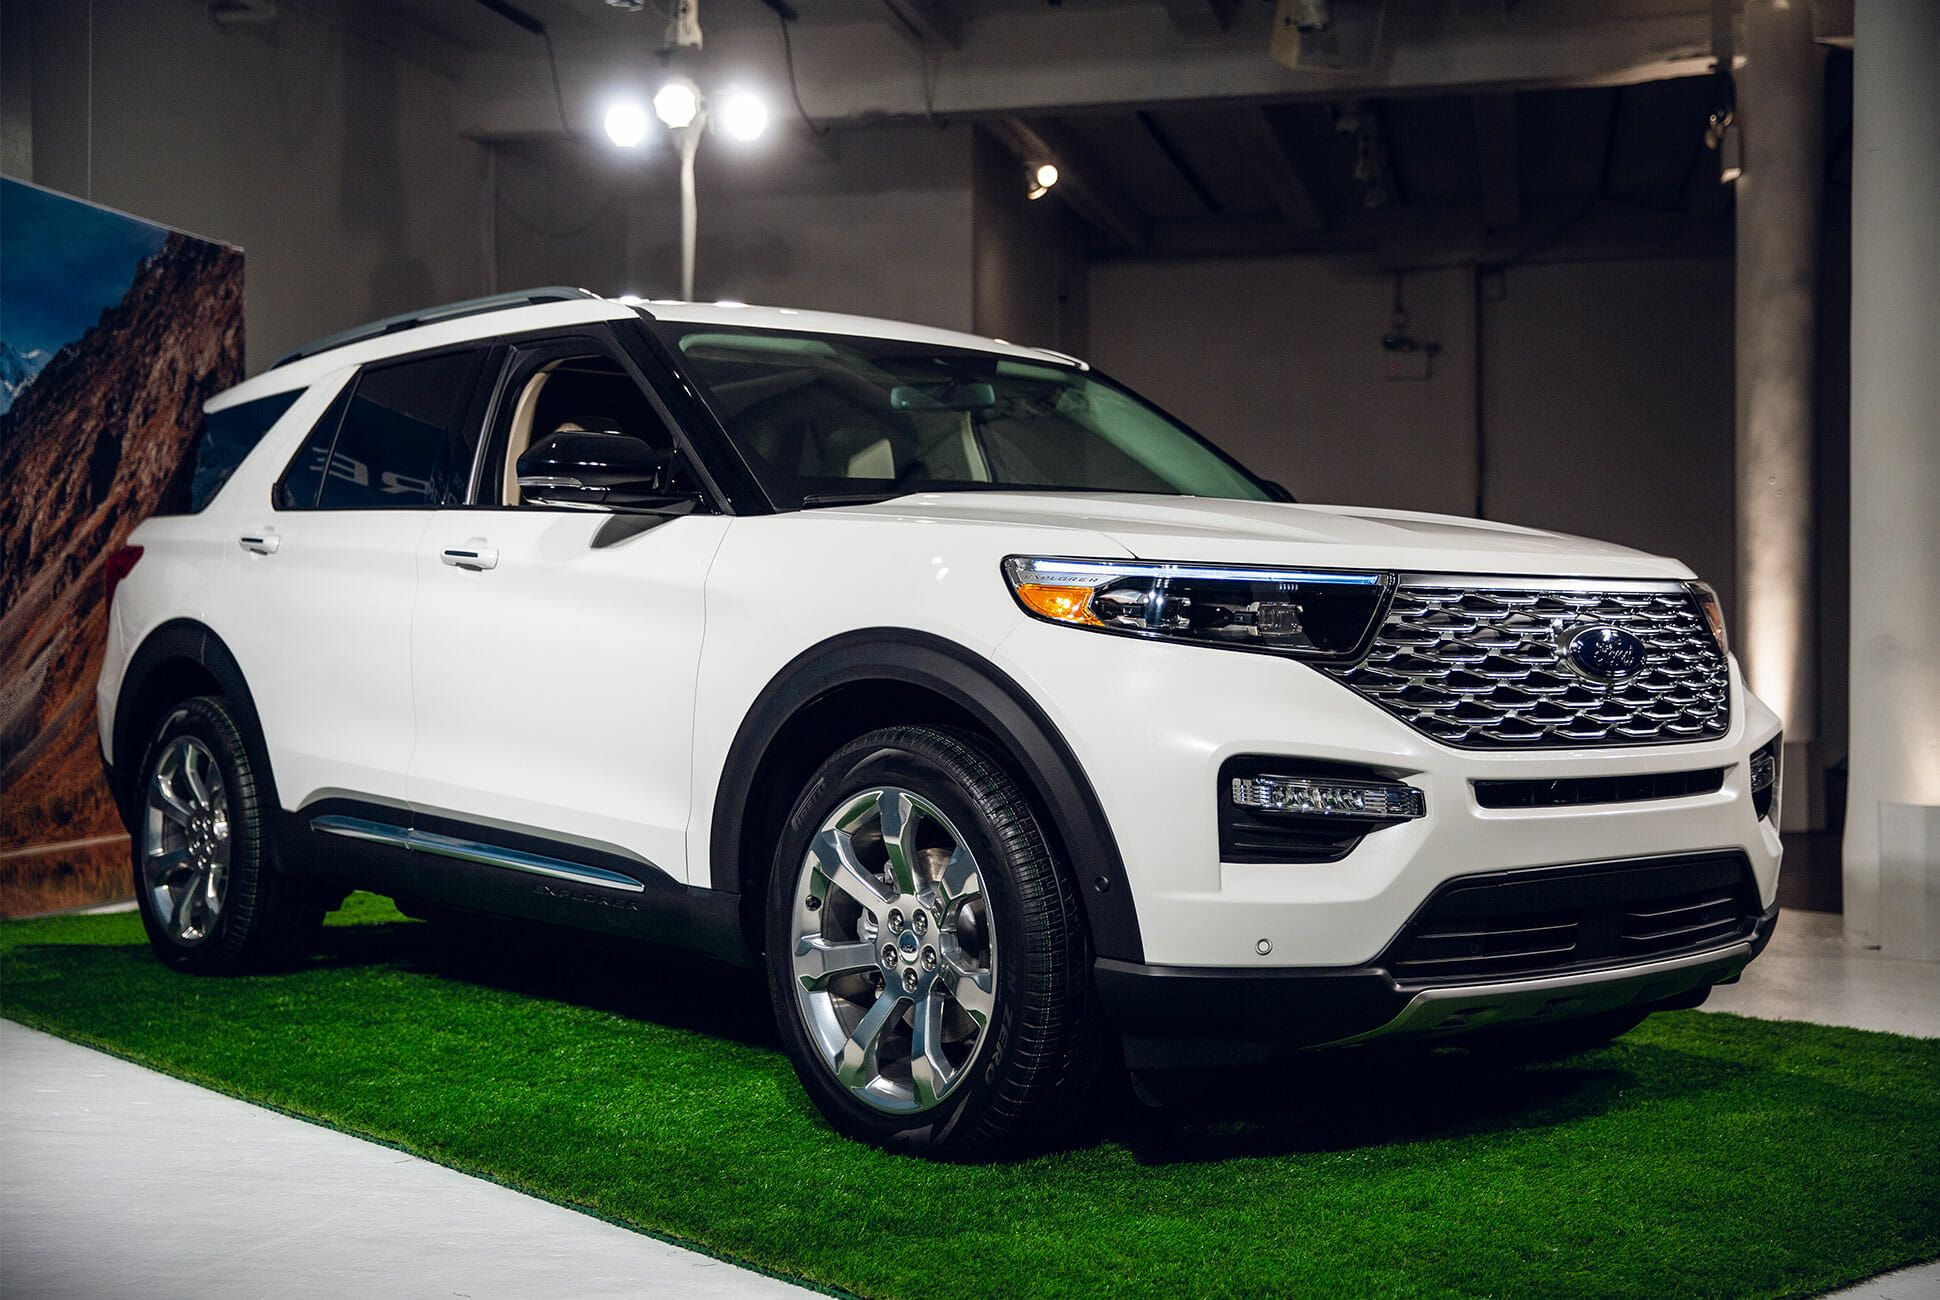 New Ford Explorer >> The 2020 Ford Explorer Is All New From The Ground Up Gear